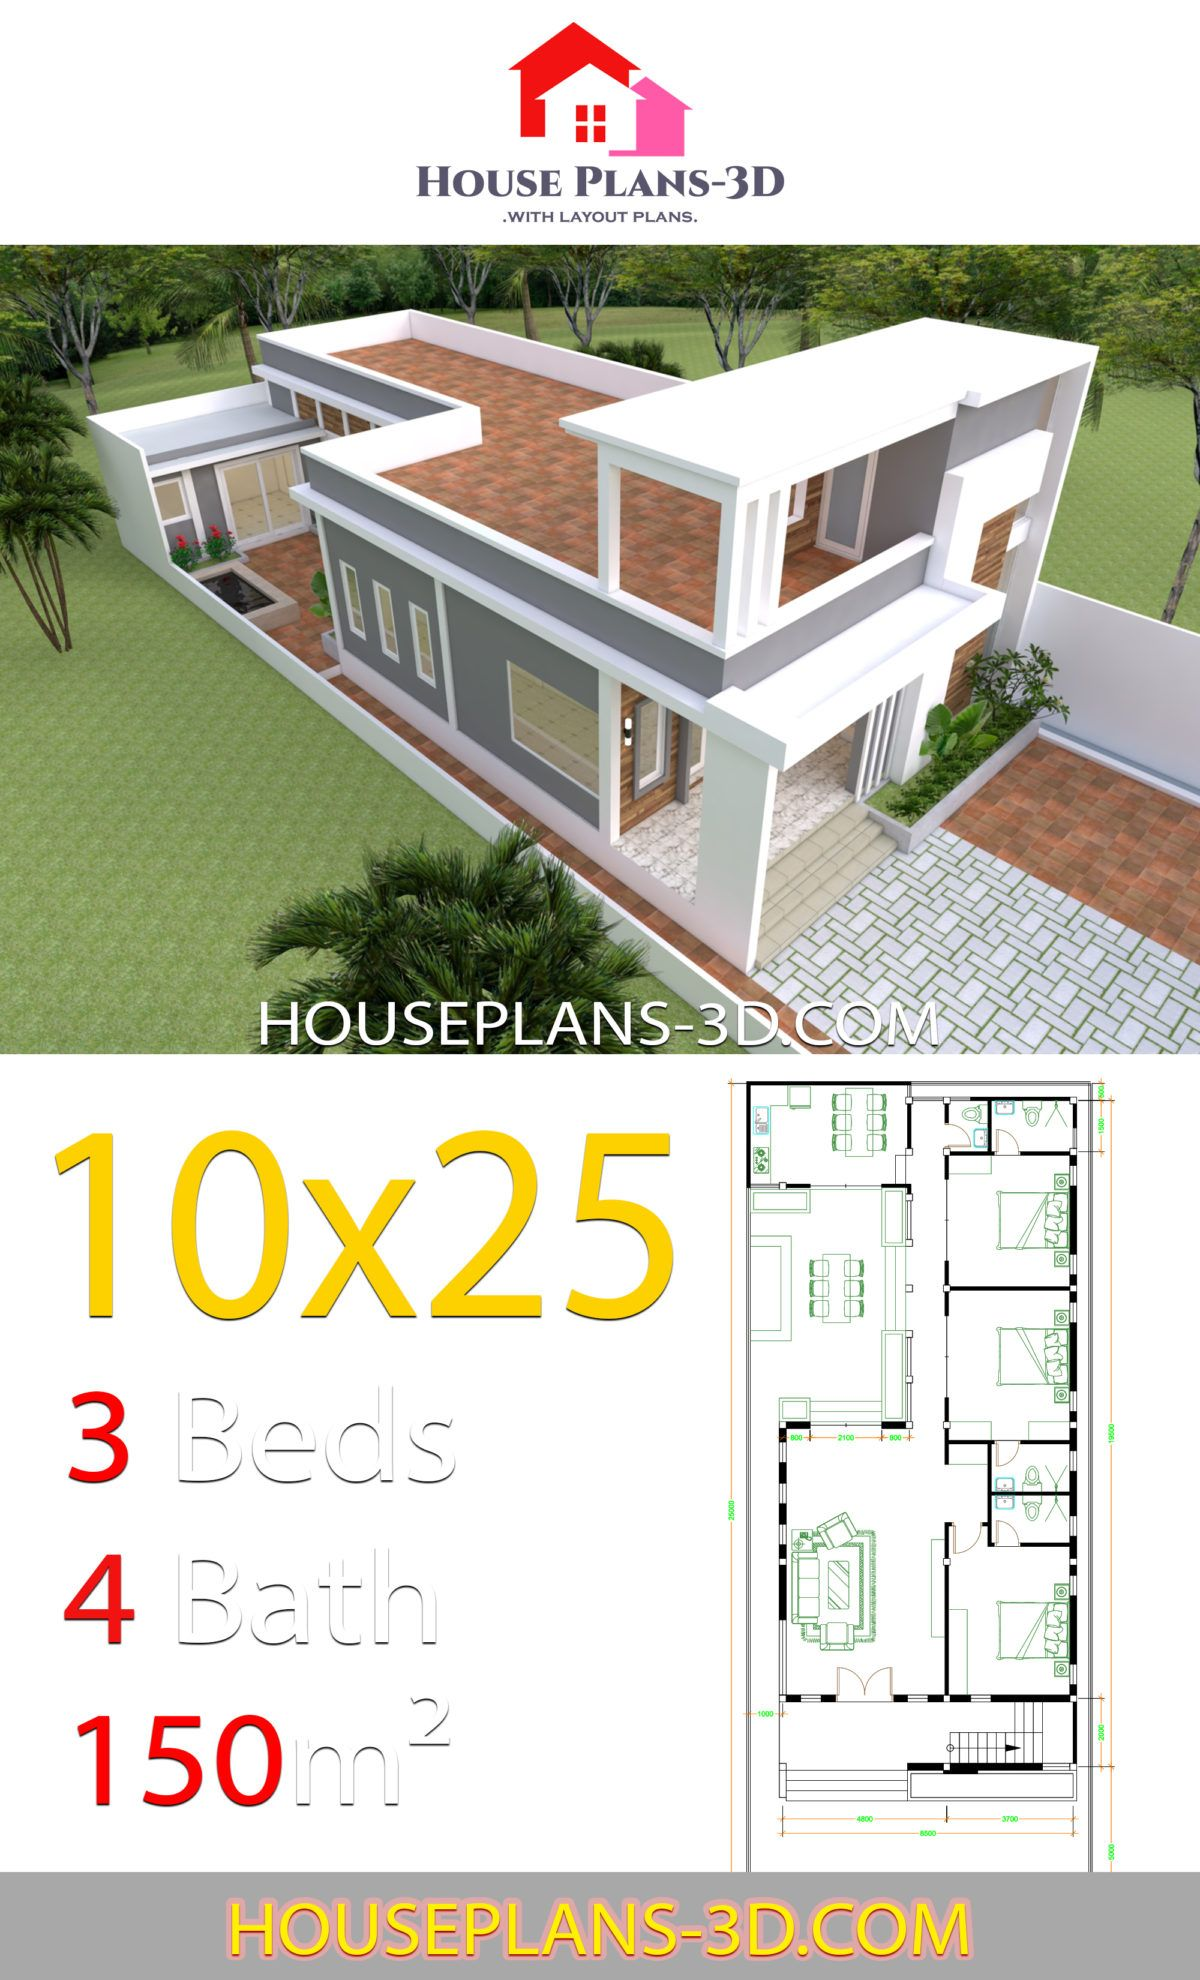 House Design Plans 10x25 With 3 Bedrooms House Plans 3d In 2020 Small Contemporary House Plans Contemporary House Plans Small House Design Plans